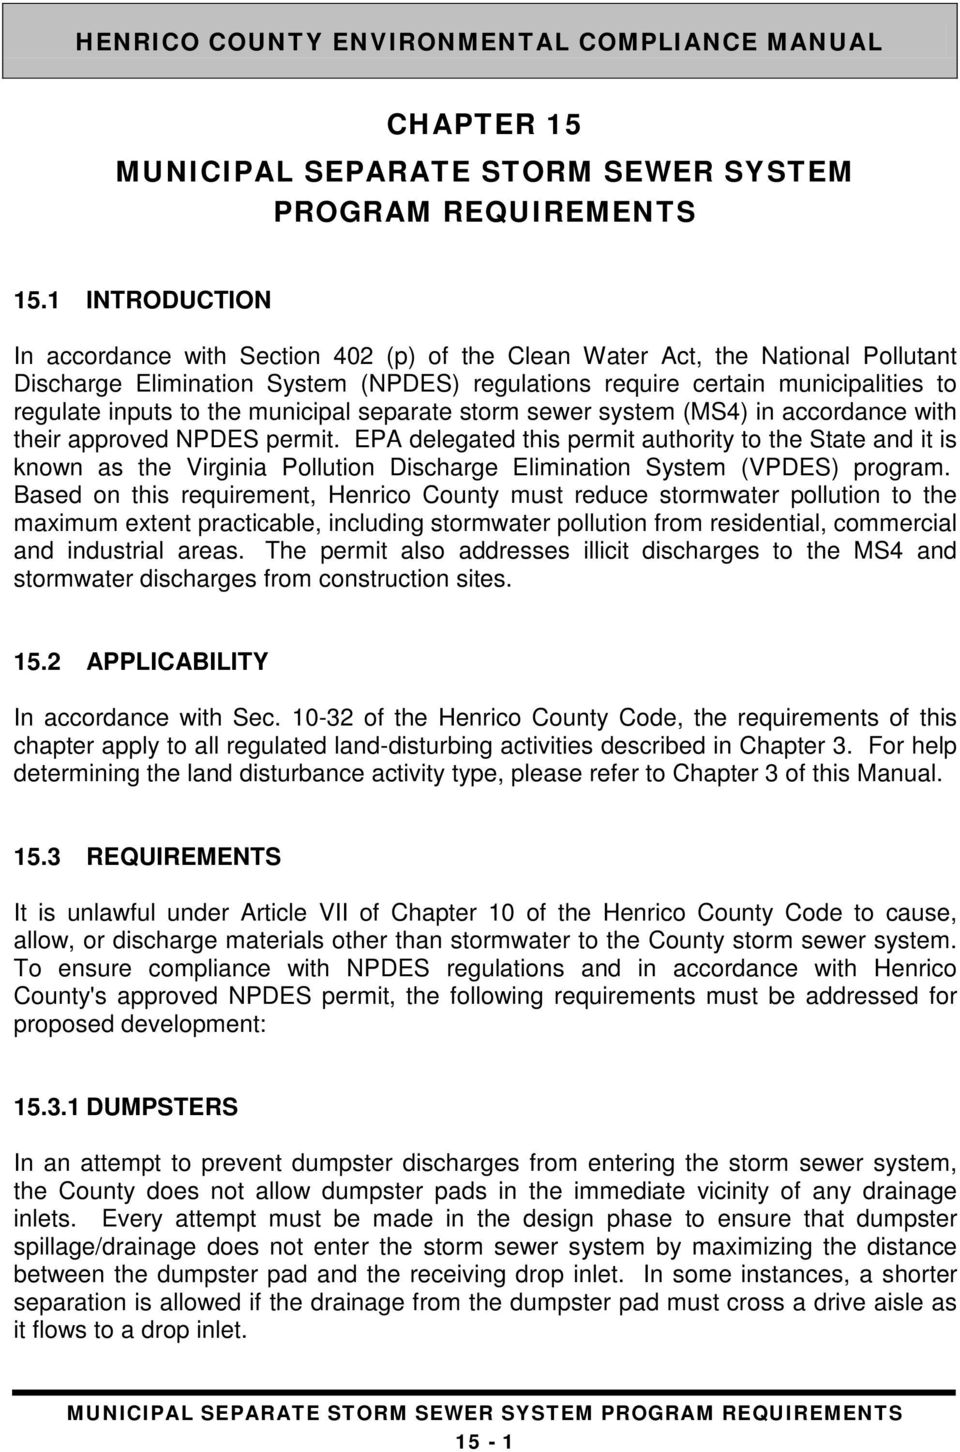 the municipal separate storm sewer system (MS4) in accordance with their approved NPDES permit.